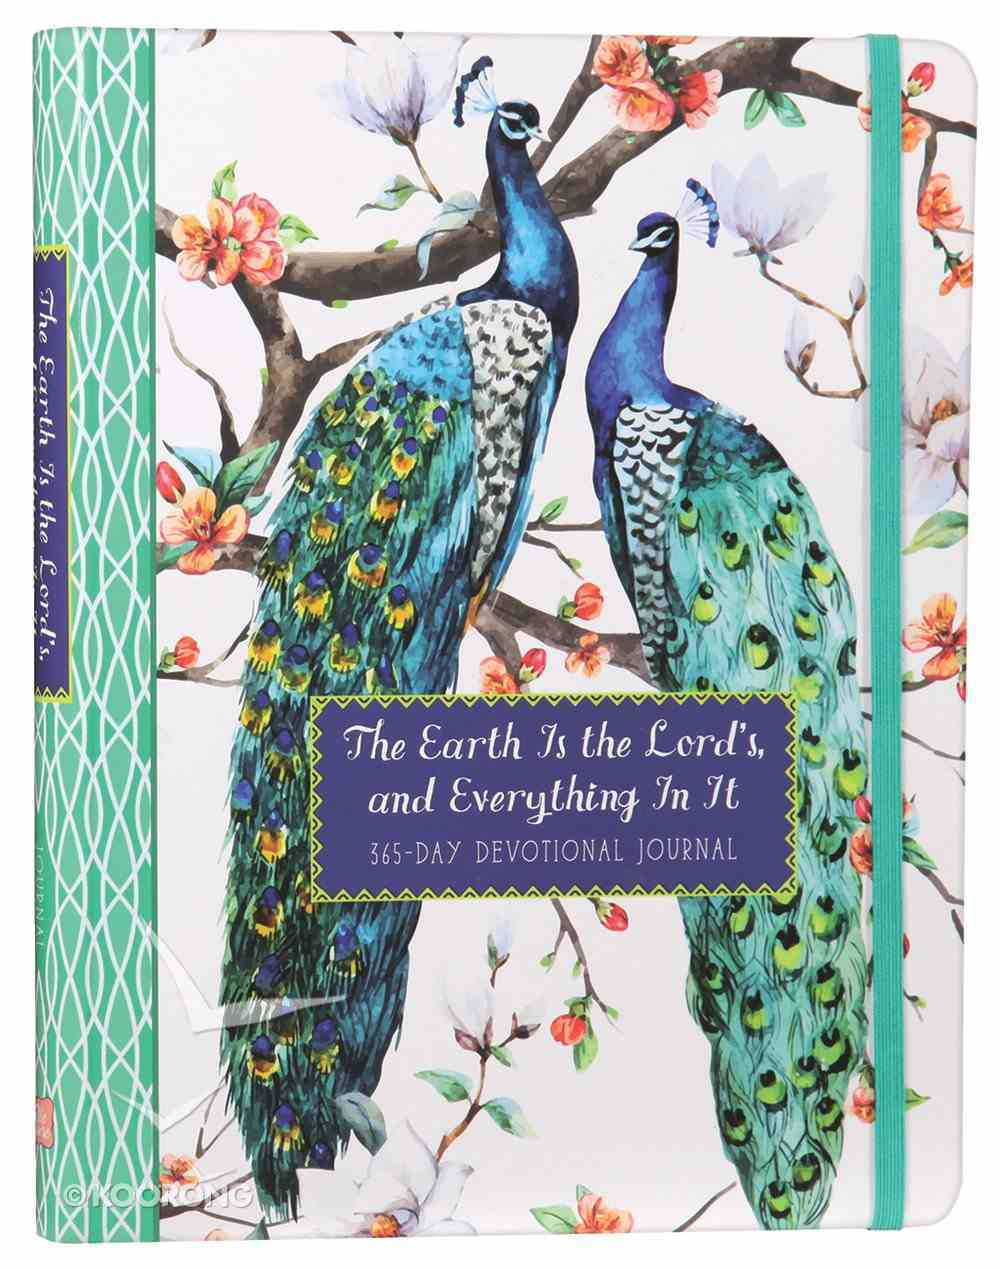 The Earth is the Lord's, and Everything in It: 365-Day Devotional Journal Paperback